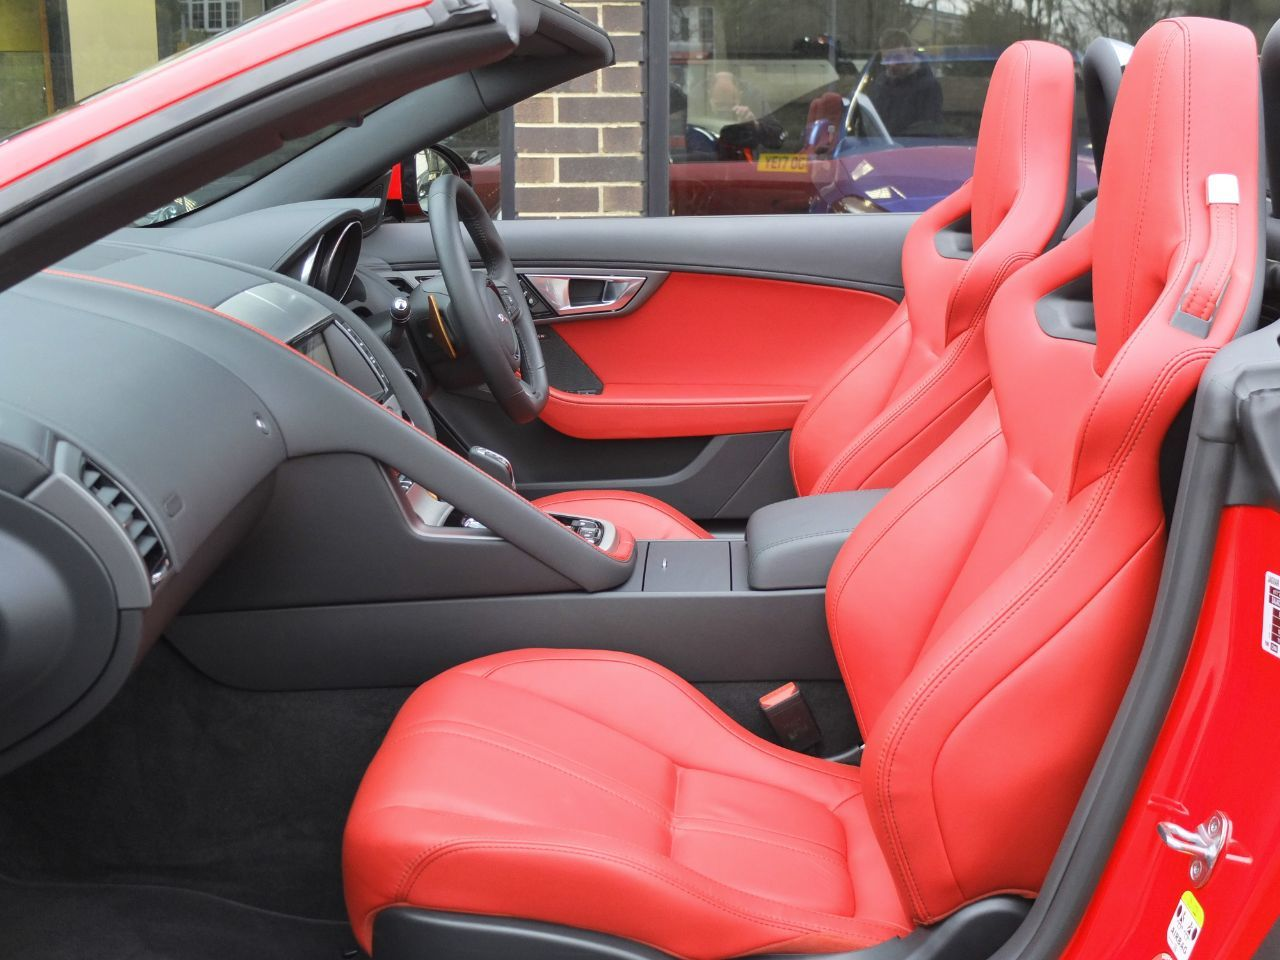 Jaguar F-type Convertible 3.0 Supercharged V6 S Auto 380ps Convertible Petrol Salsa Red